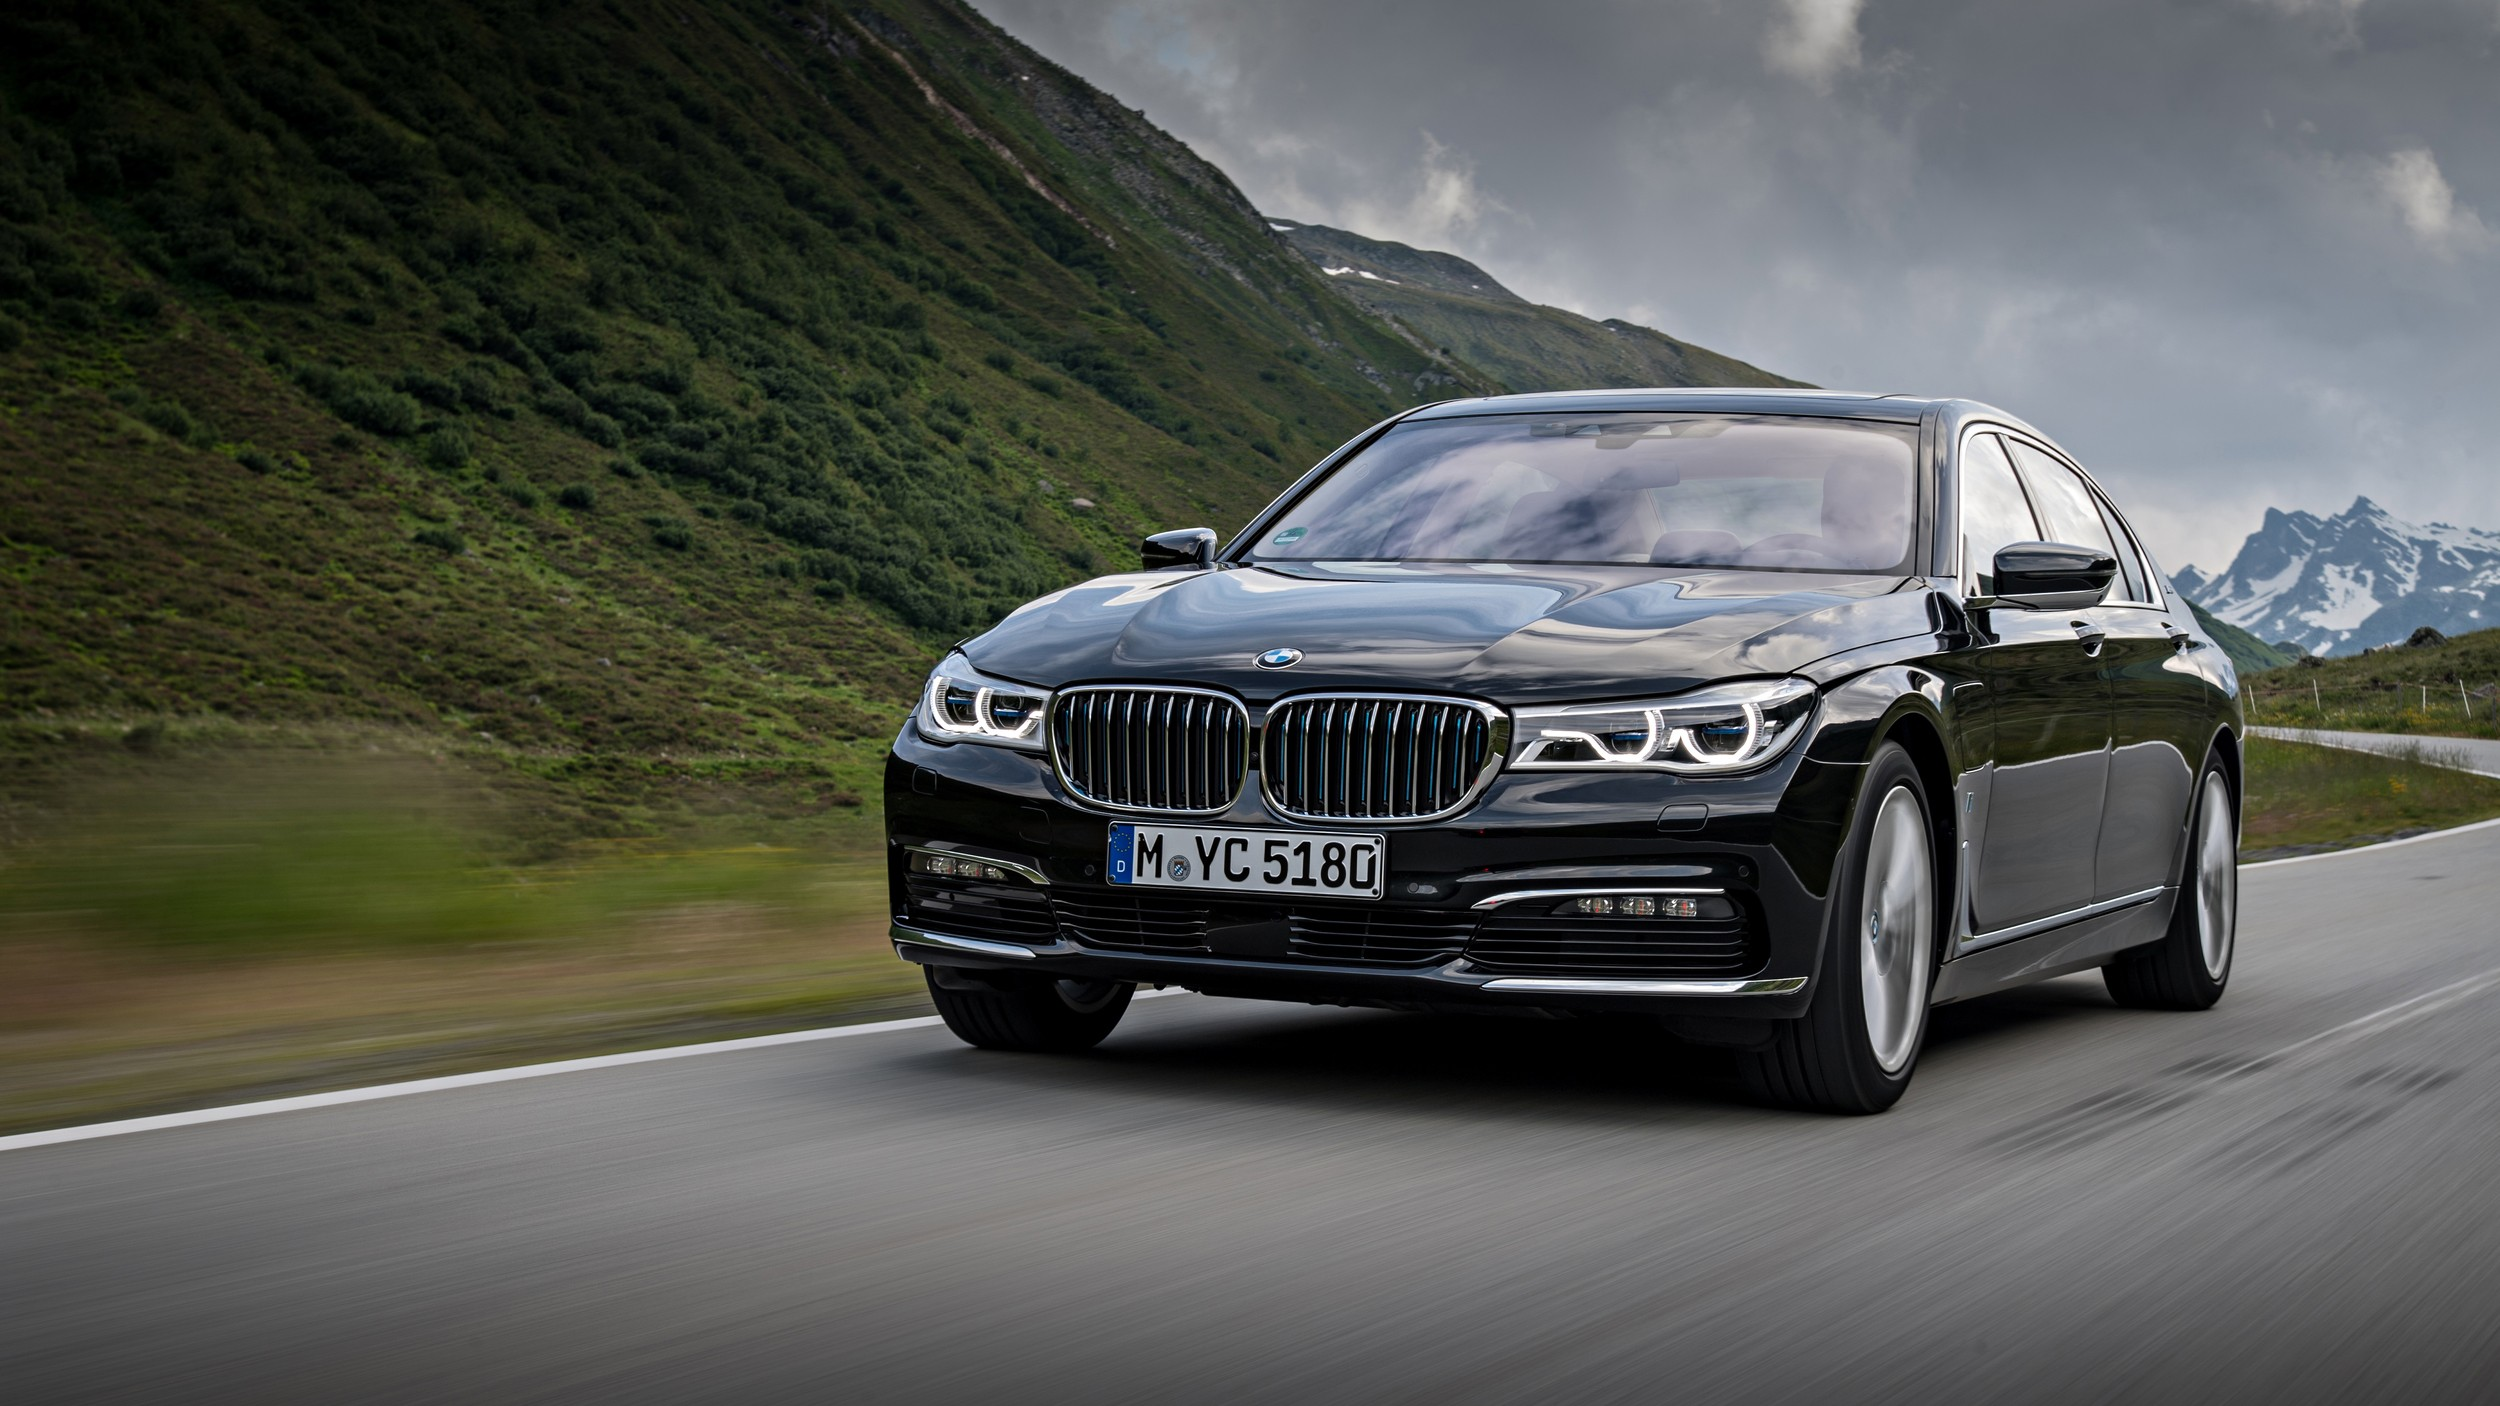 2017 bmw 740e iperformance goes official available in lwb guise and with xdrive autoevolution. Black Bedroom Furniture Sets. Home Design Ideas